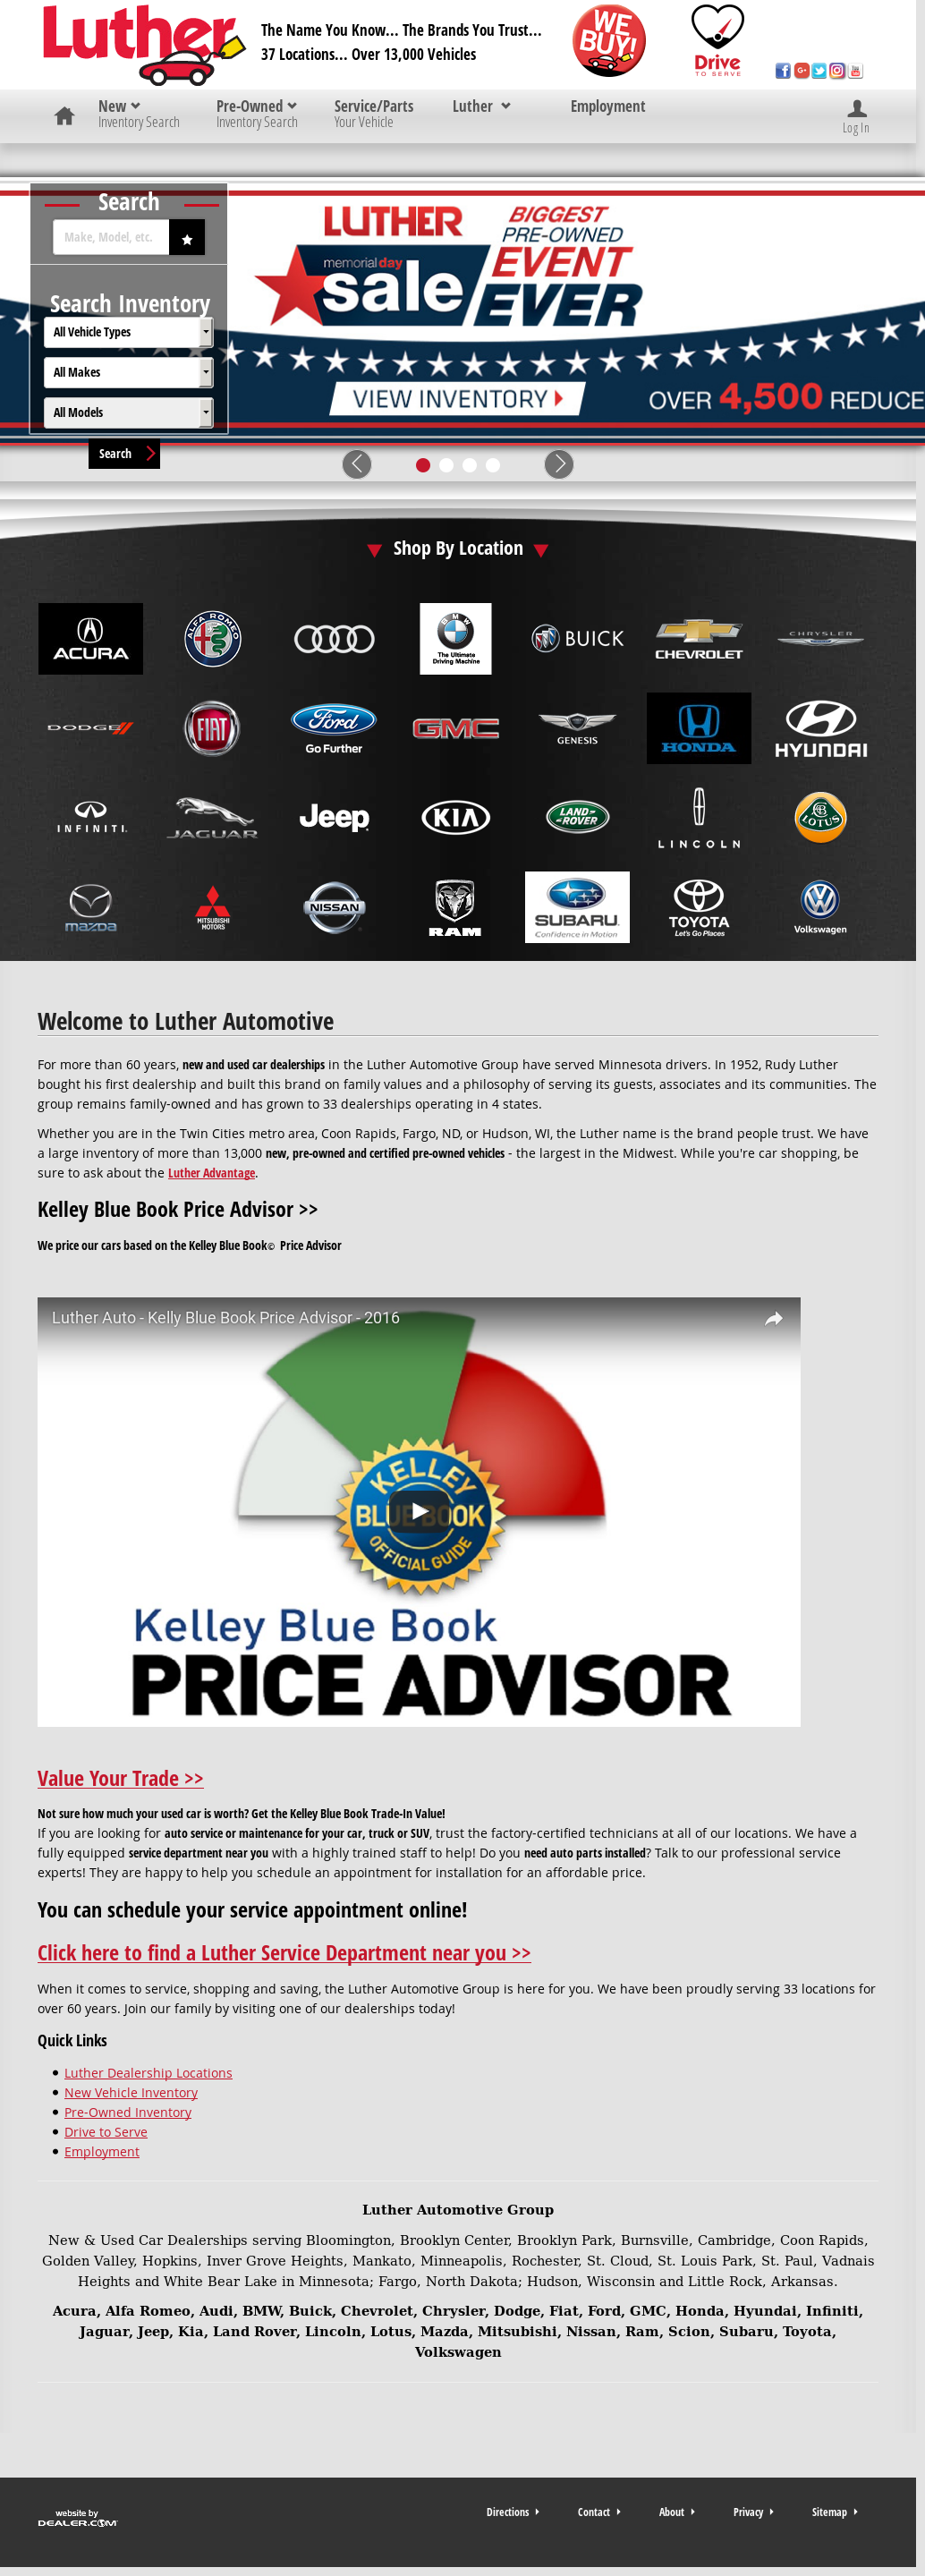 Owler Reports Luther Hudson Chevrolet Gmc Luther Automotive Targets Hlv Customers